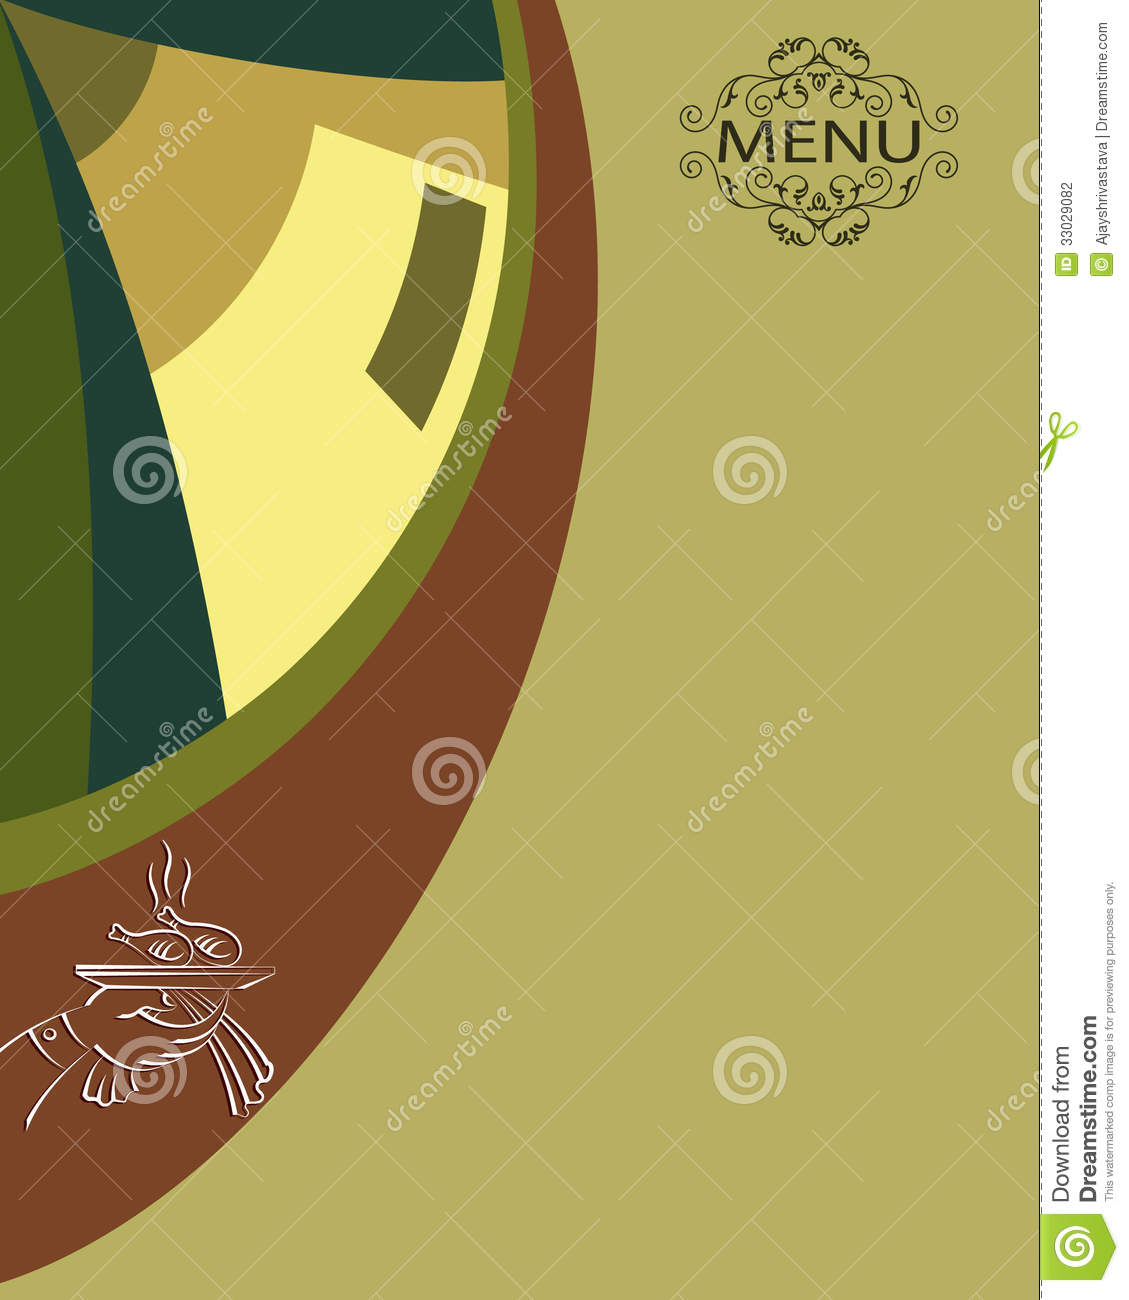 menu card design template stock illustration  image of